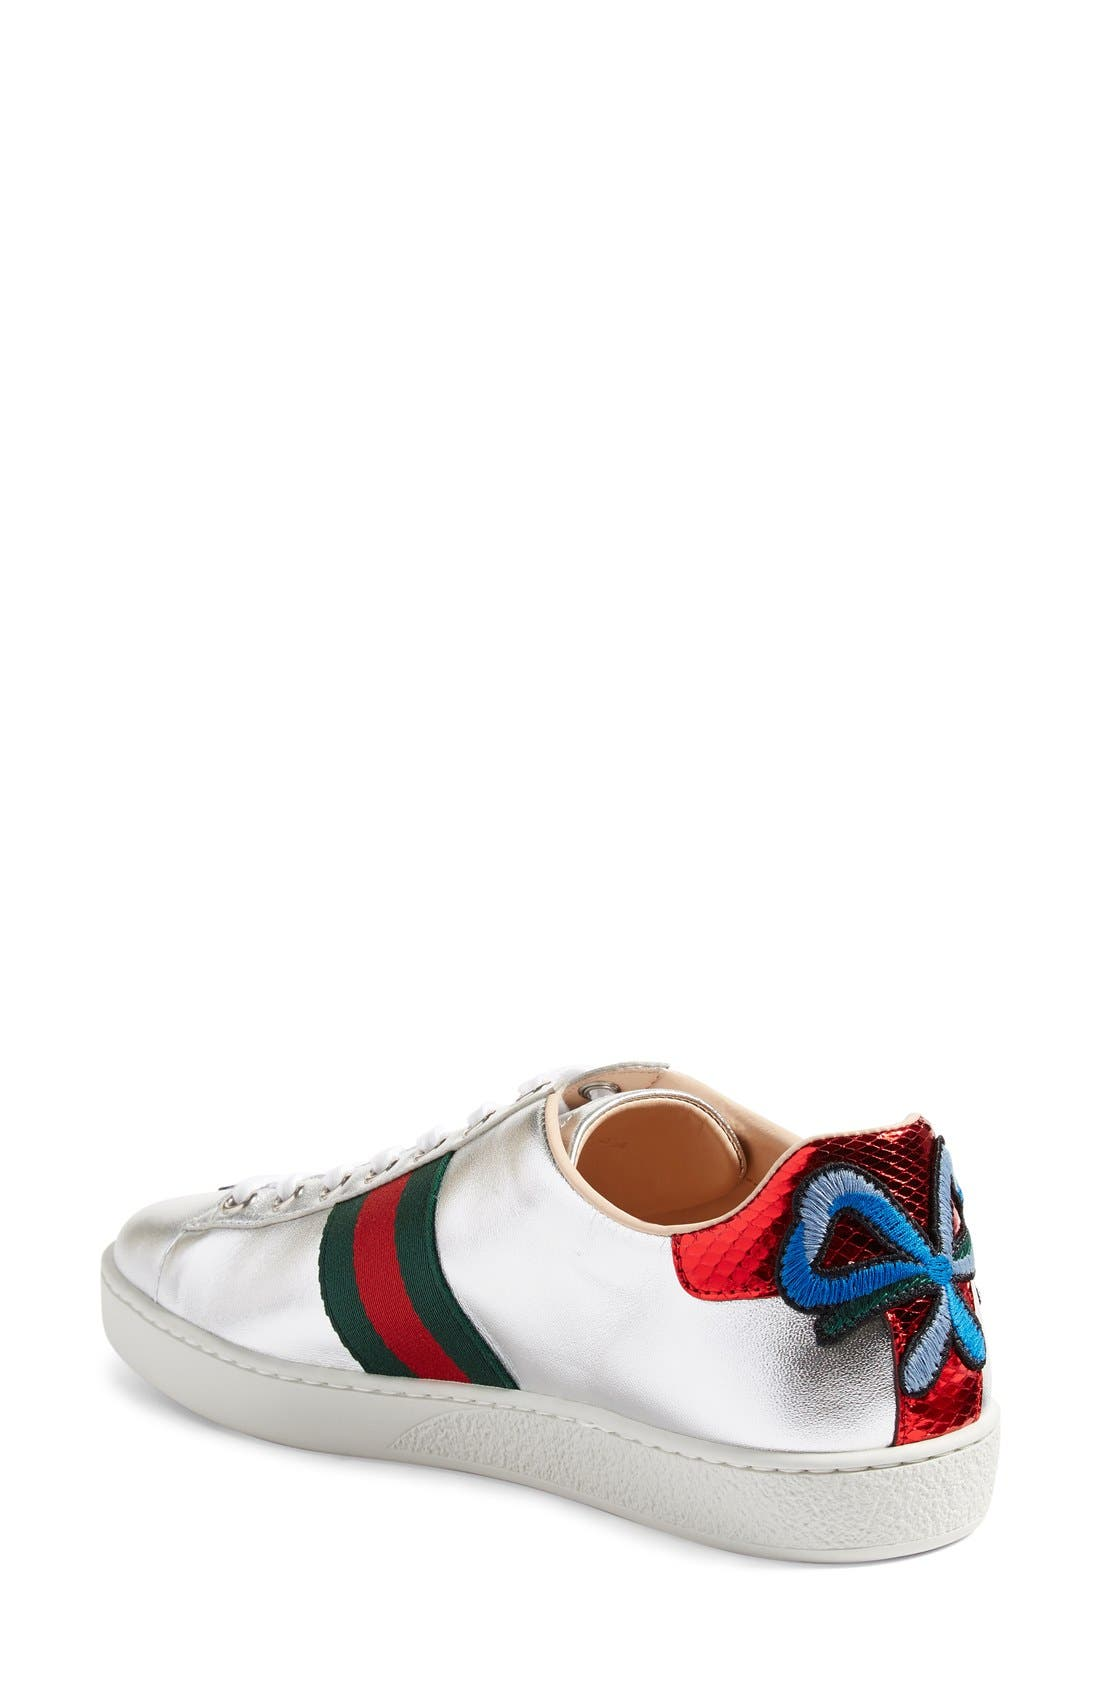 'New Ace' Low Top Sneaker,                             Alternate thumbnail 28, color,